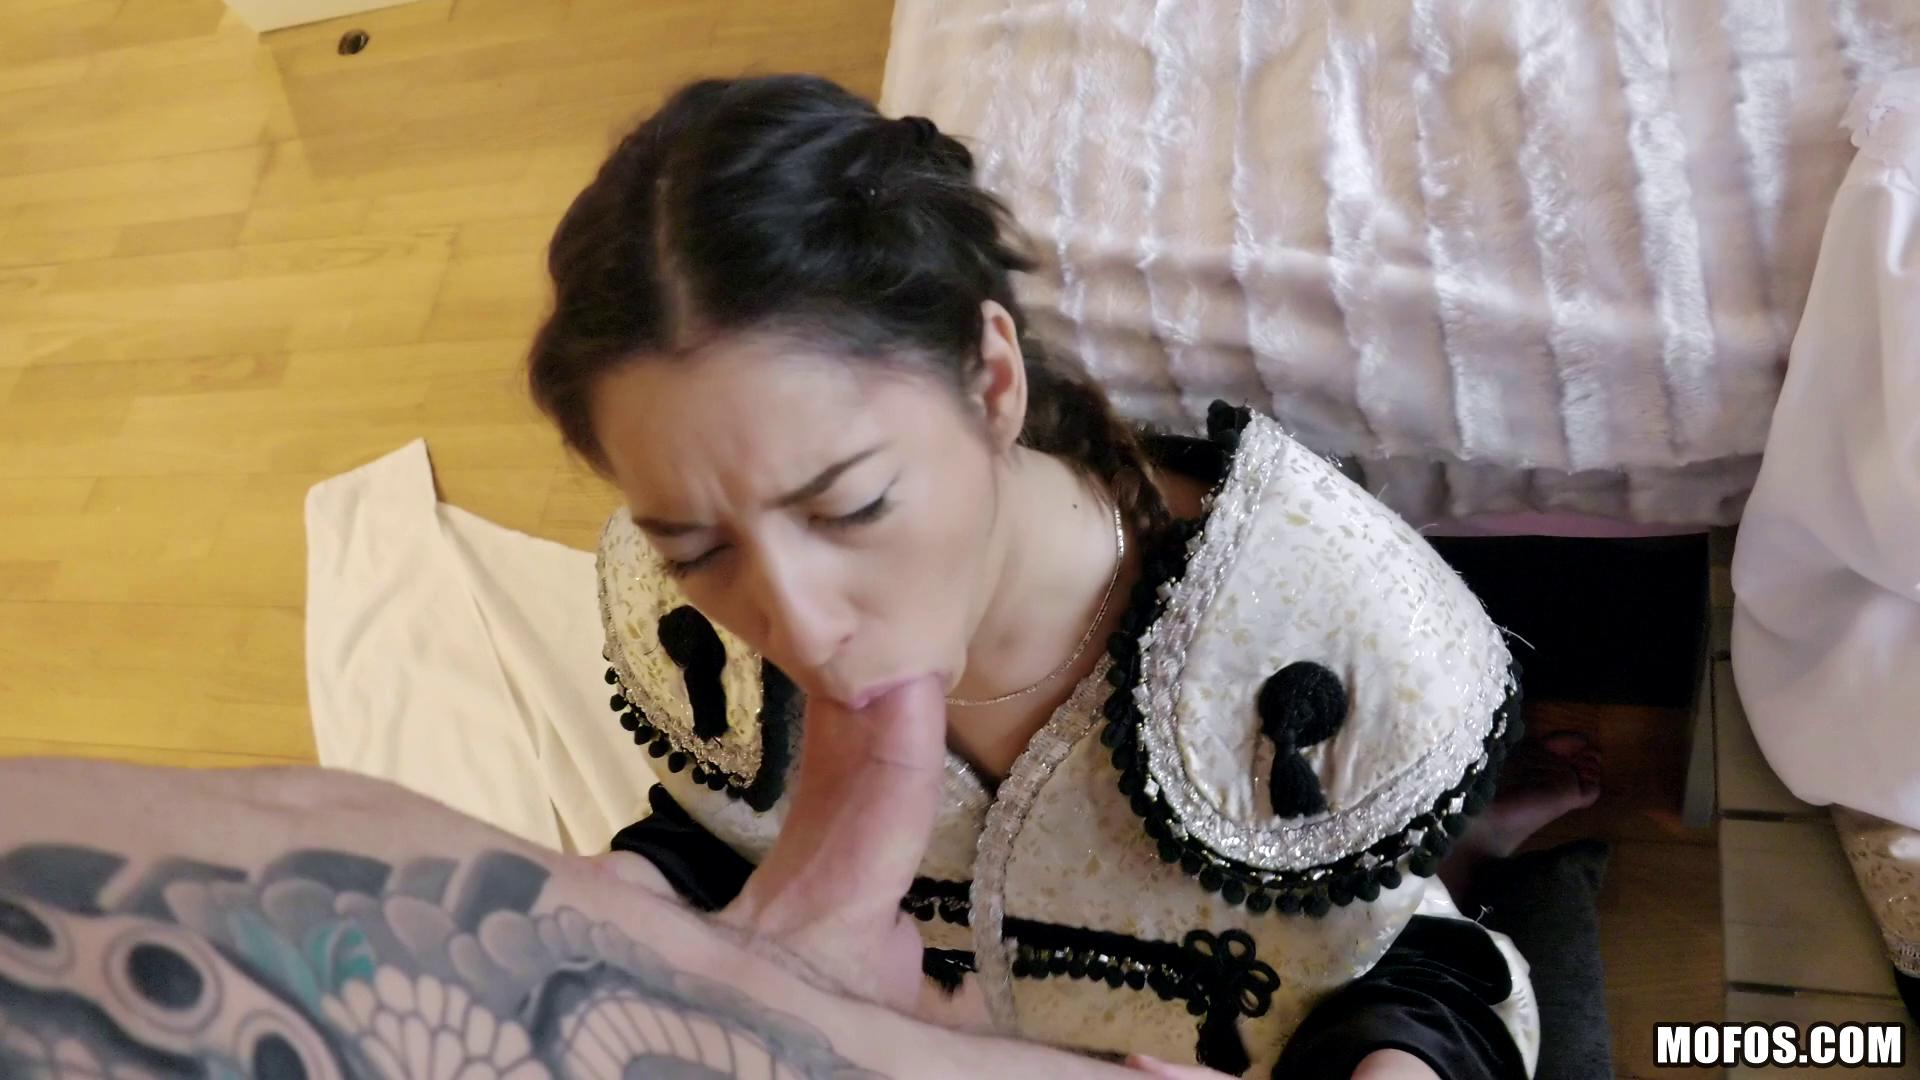 LatinaSexTapes – Angie White Bullfighter Fucks Brazilian Fan